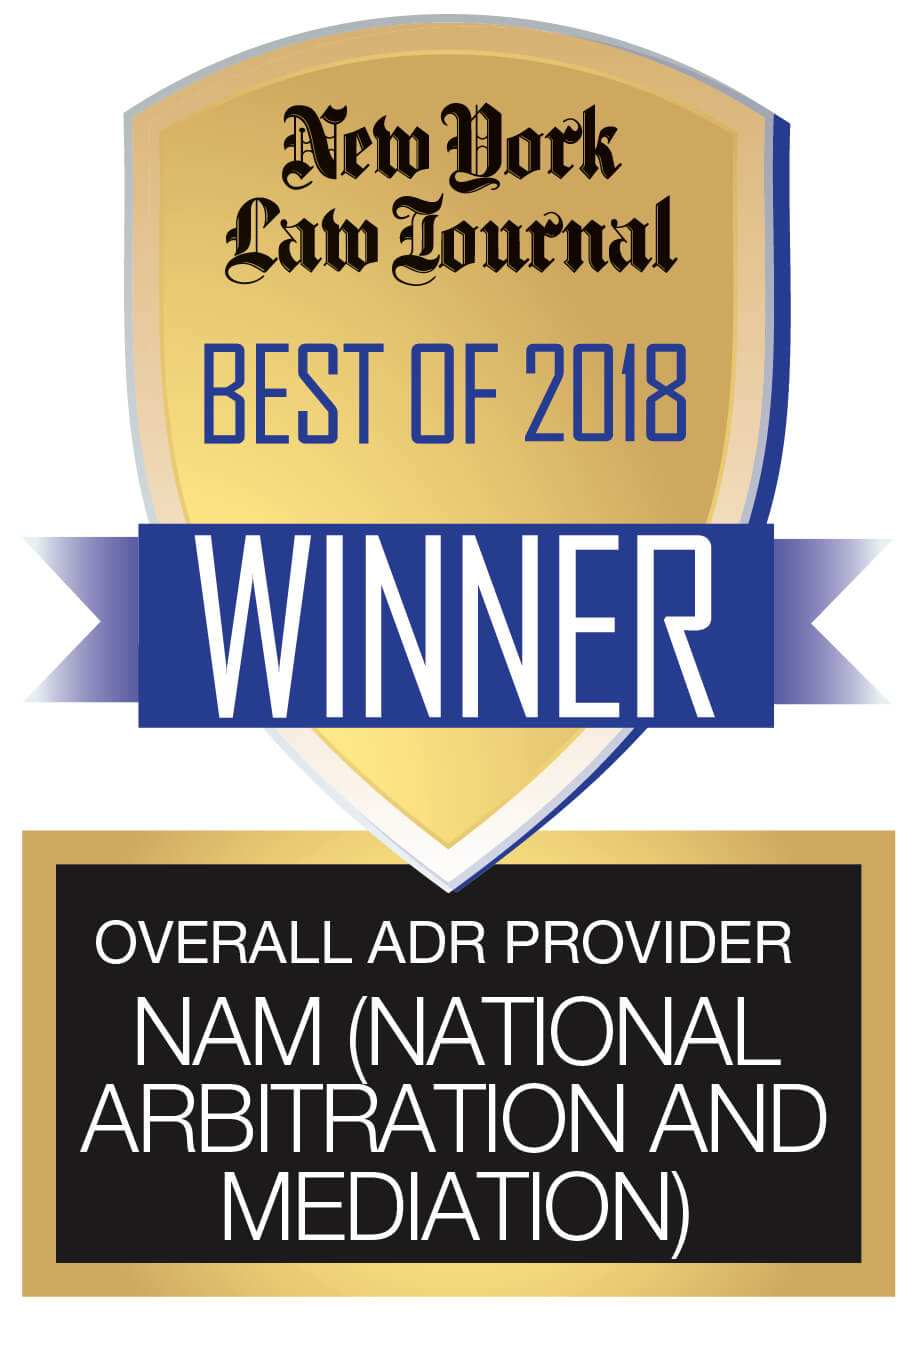 THE NEW YORK LAW JOURNAL READERS HAVE SPOKEN  NAM VOTED #1 ADR FIRM